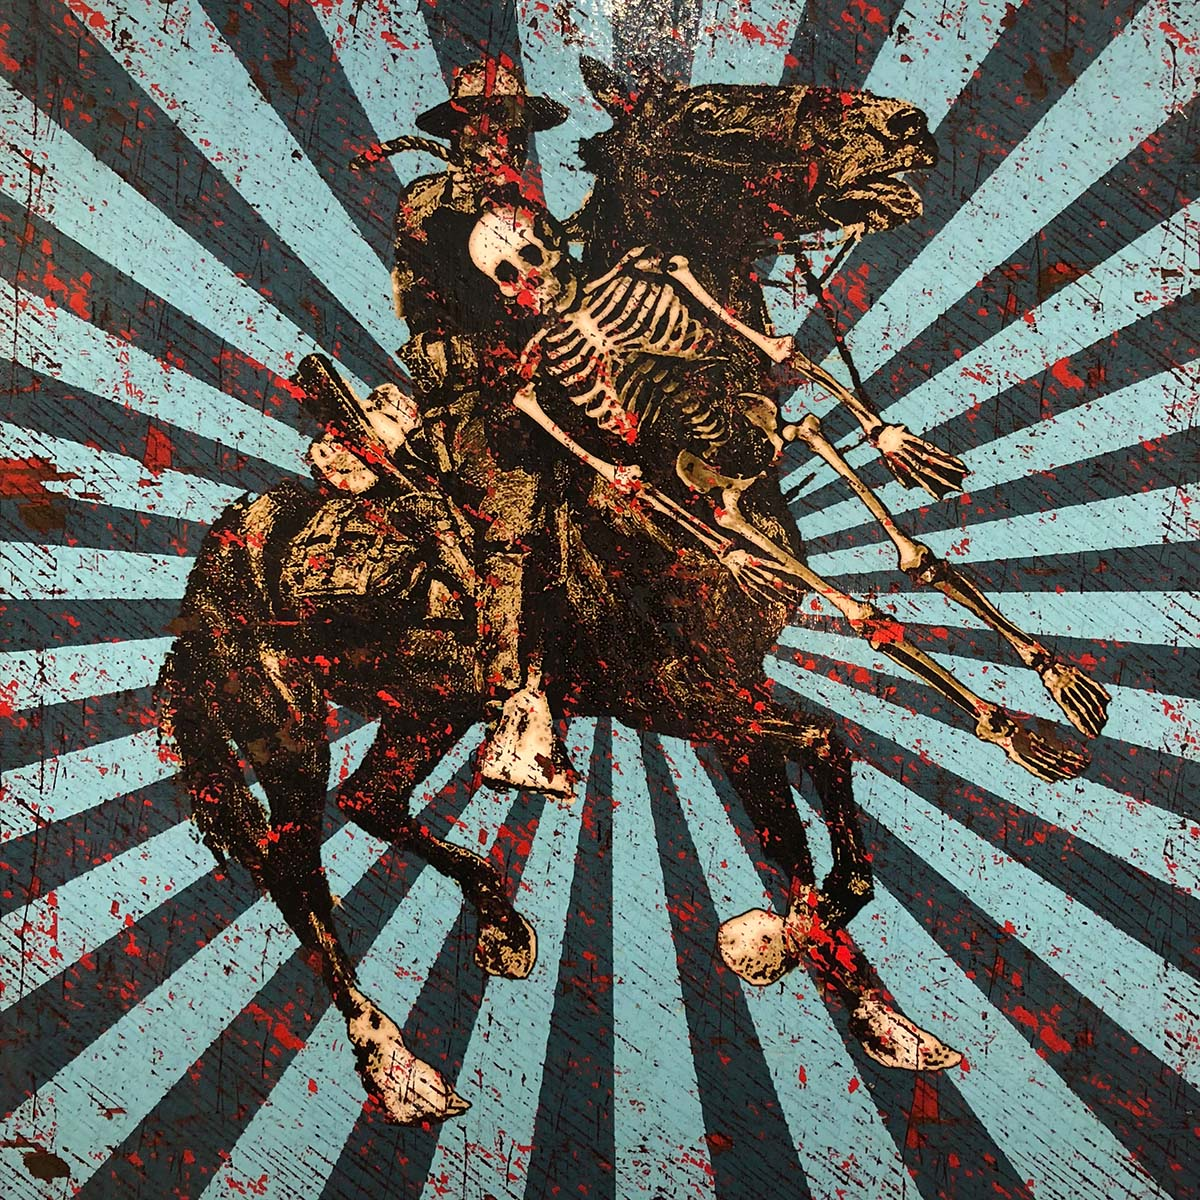 Four Lost Souls - Jon Langford - Yard Dog Art